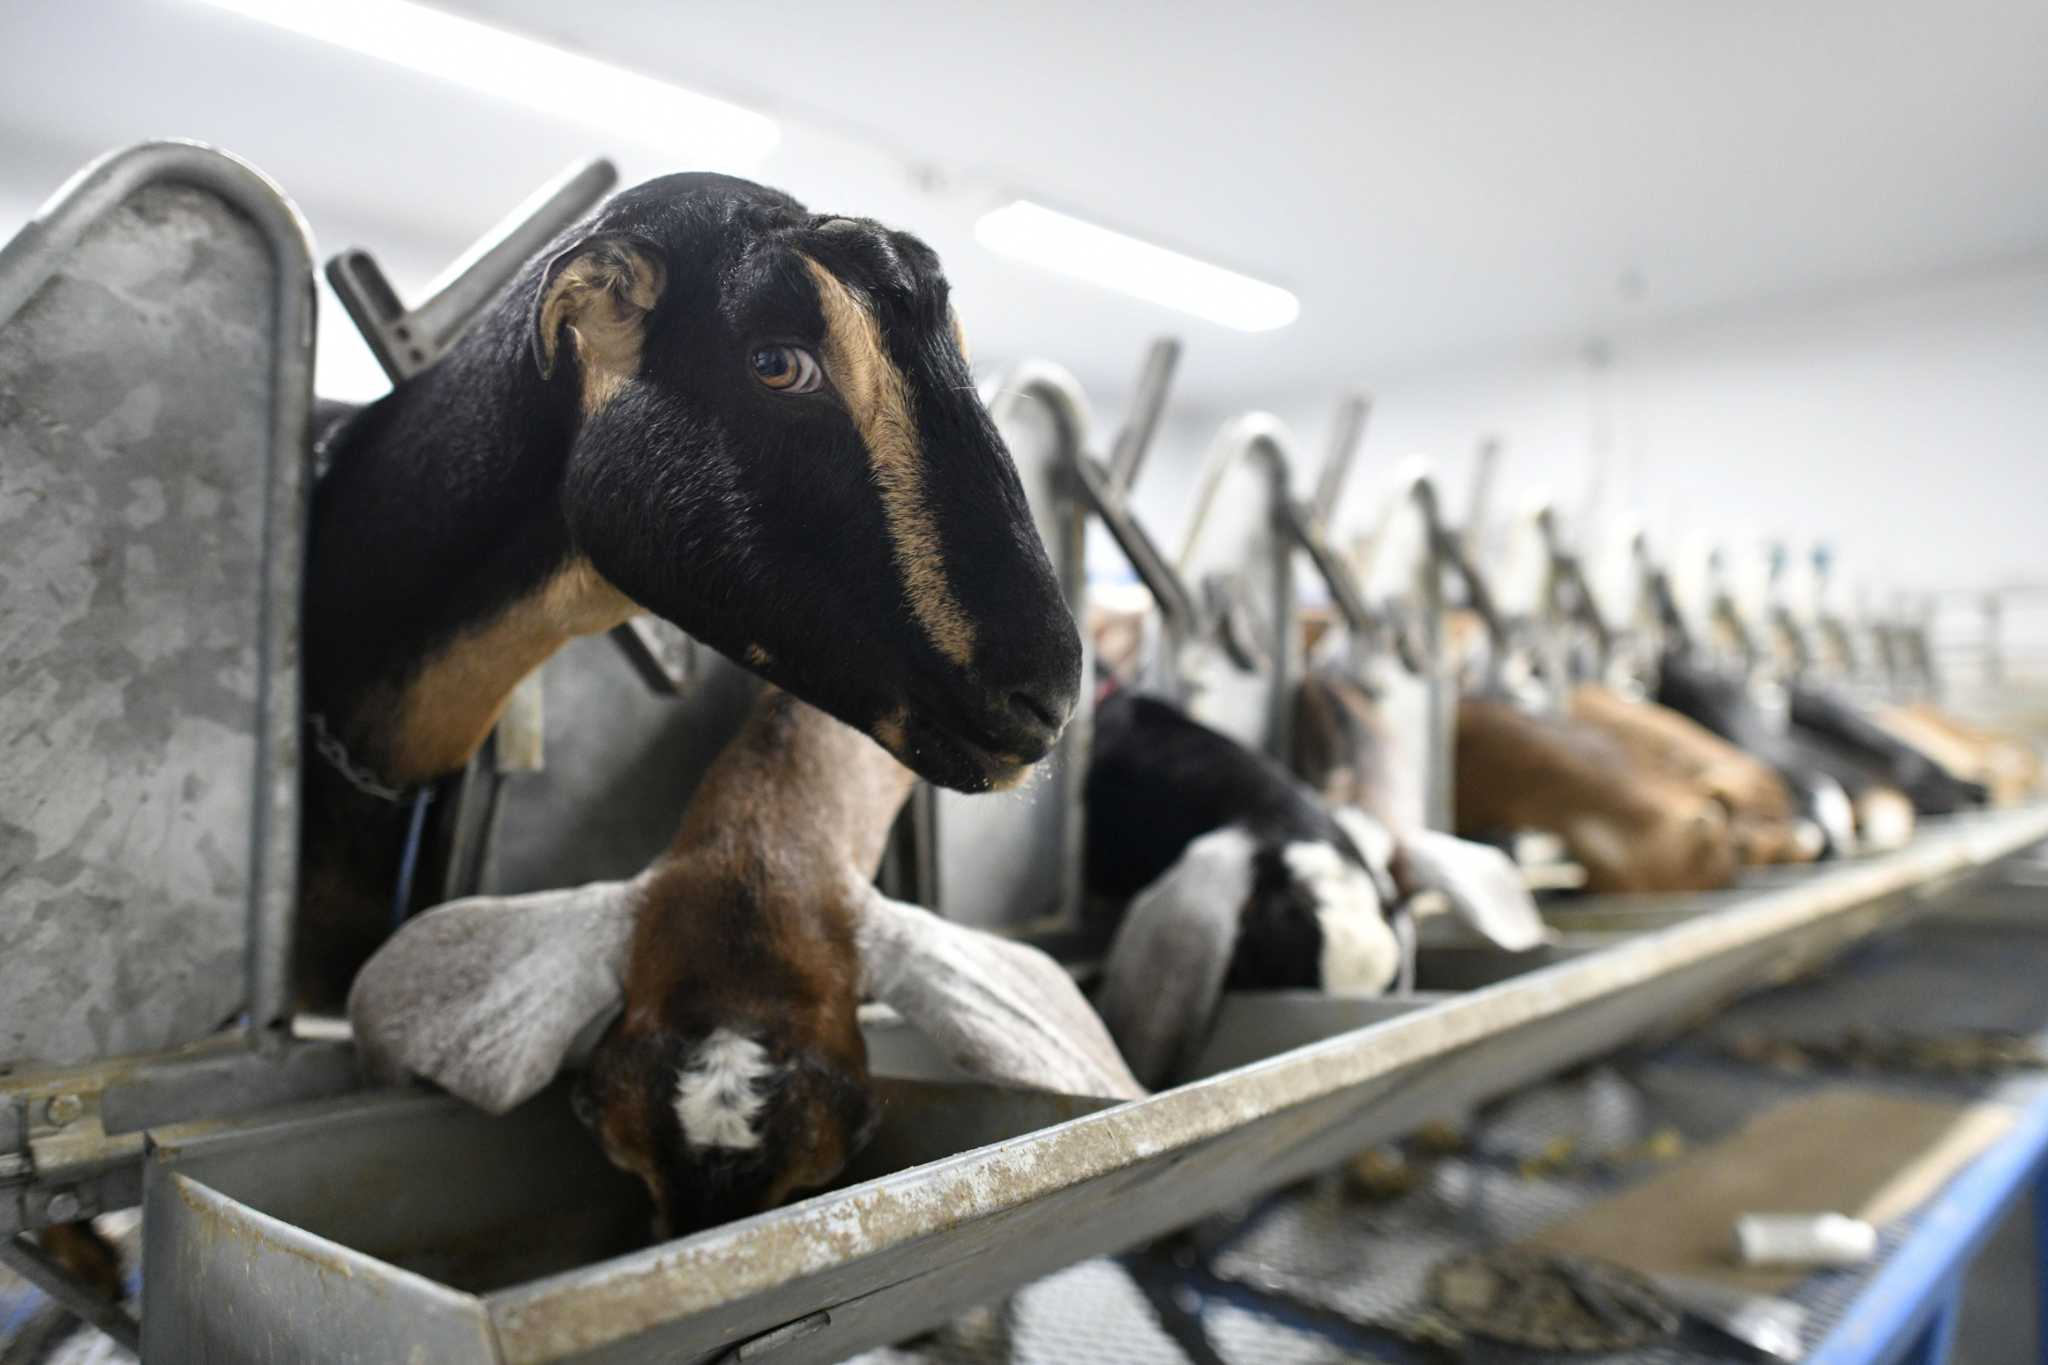 Podcast: Goats: Yes. Goats at dinner theater: No.